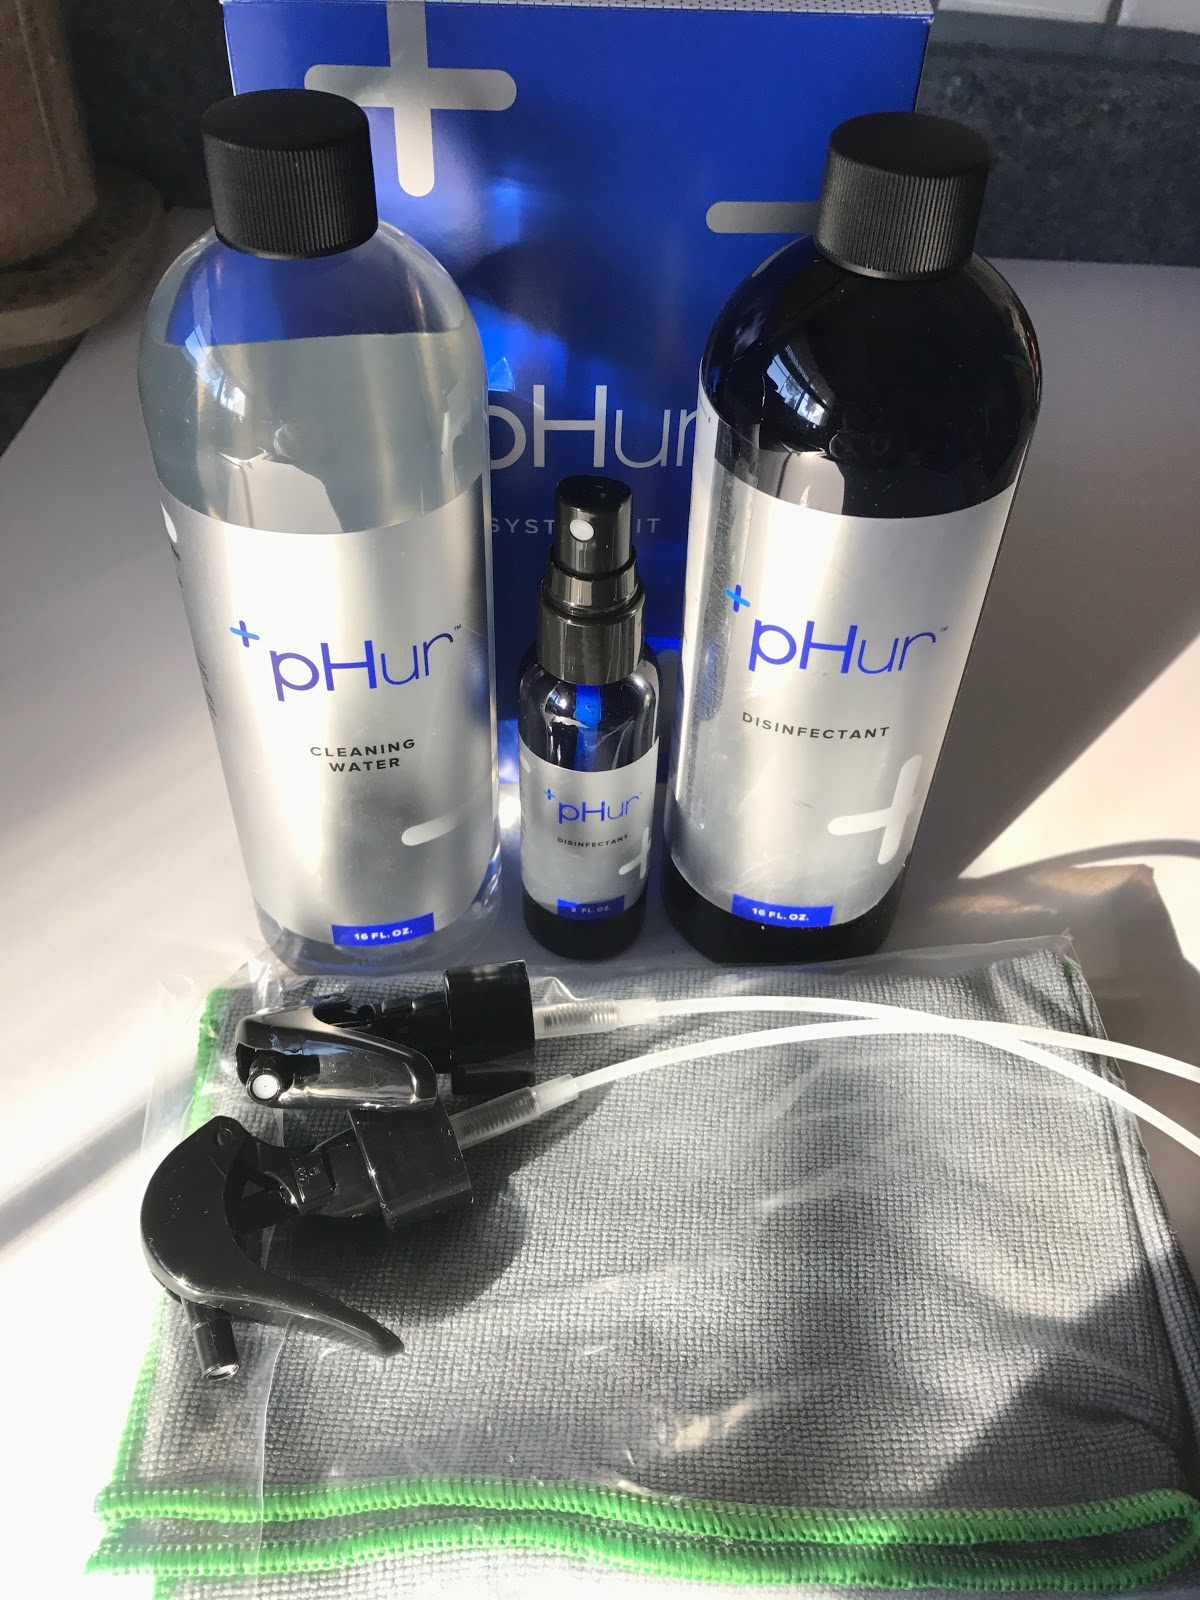 Razzle Dazzle Styles Reviews Giveaways Promo Fashion Blogger Dispenser Pureit Classic 9 Liter Cd Products Or Services Mentioned Above For Free I Am Disclosing This In Accordance With The Federal Trade Commissions 16 Cfr Part 255 Guides